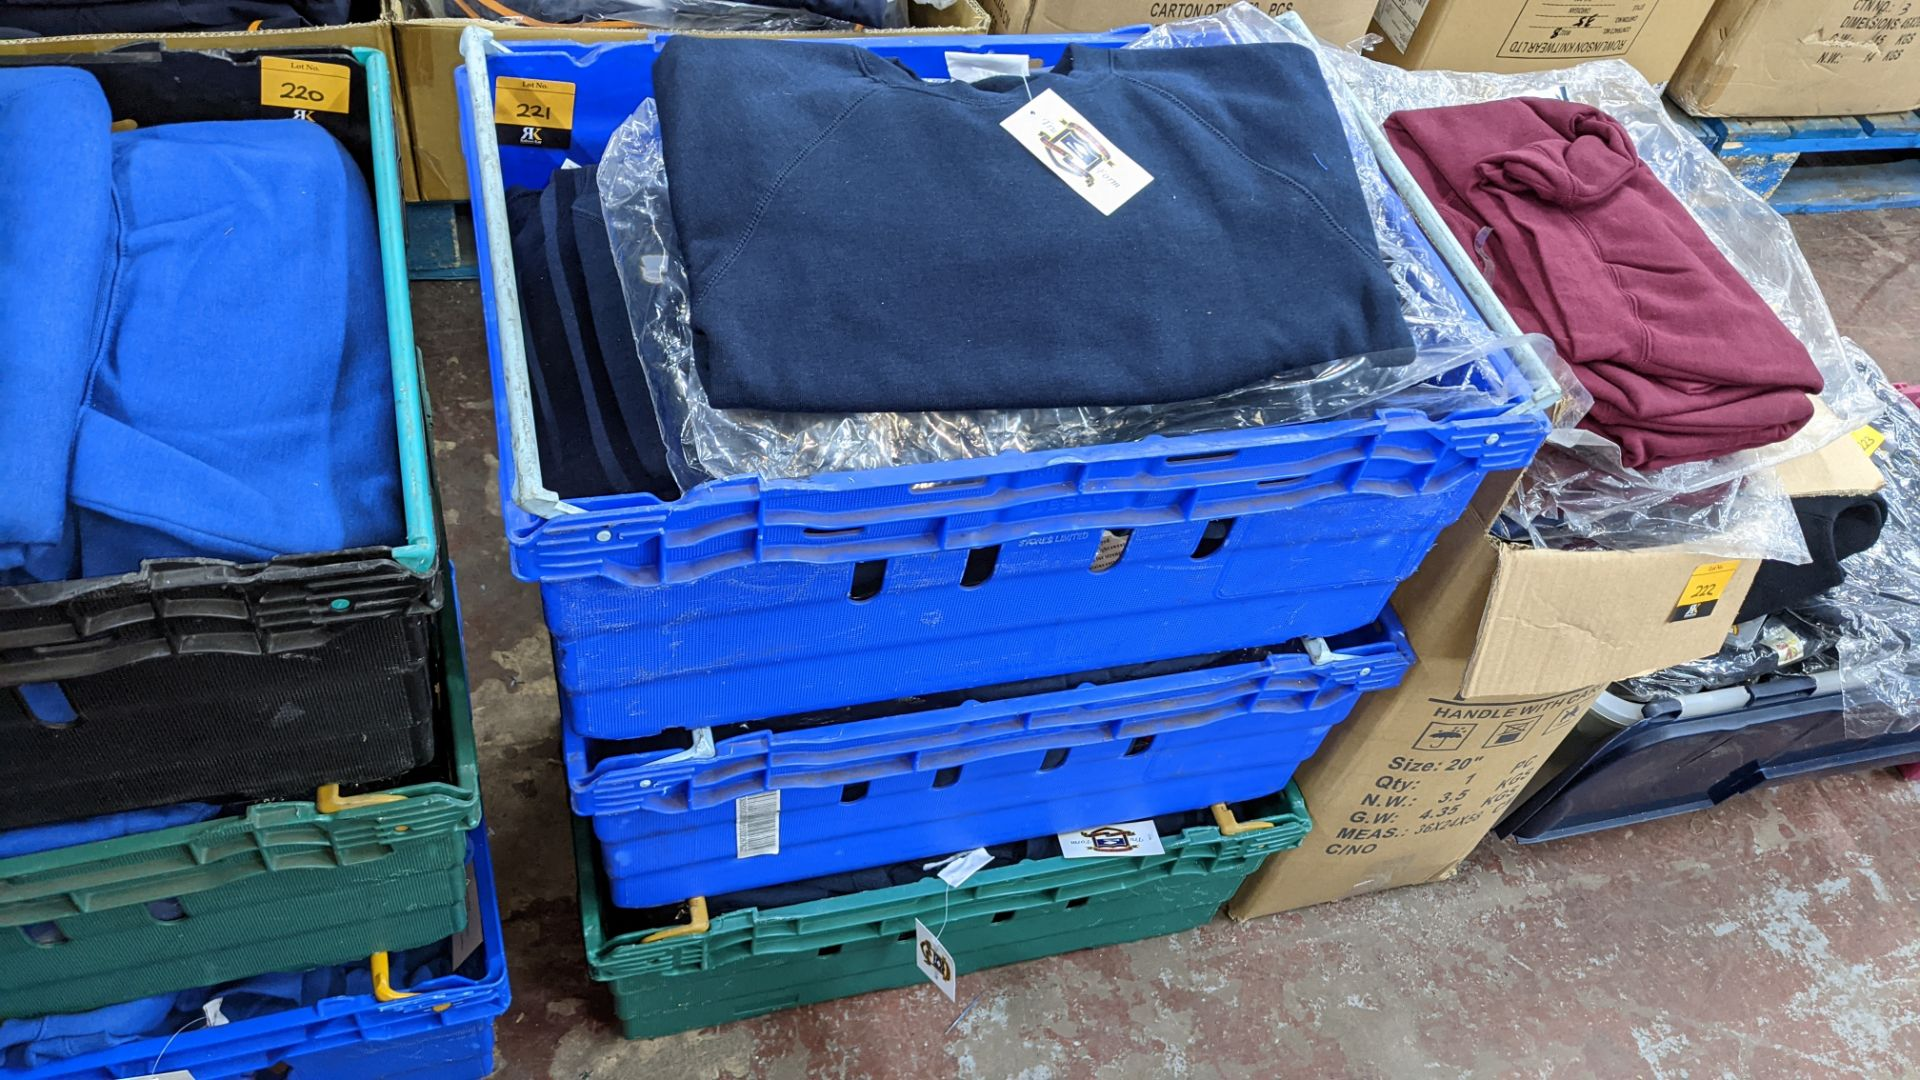 Approx 48 off children's blue sweatshirts - the contents of 3 crates. NB crates excluded - Image 2 of 4